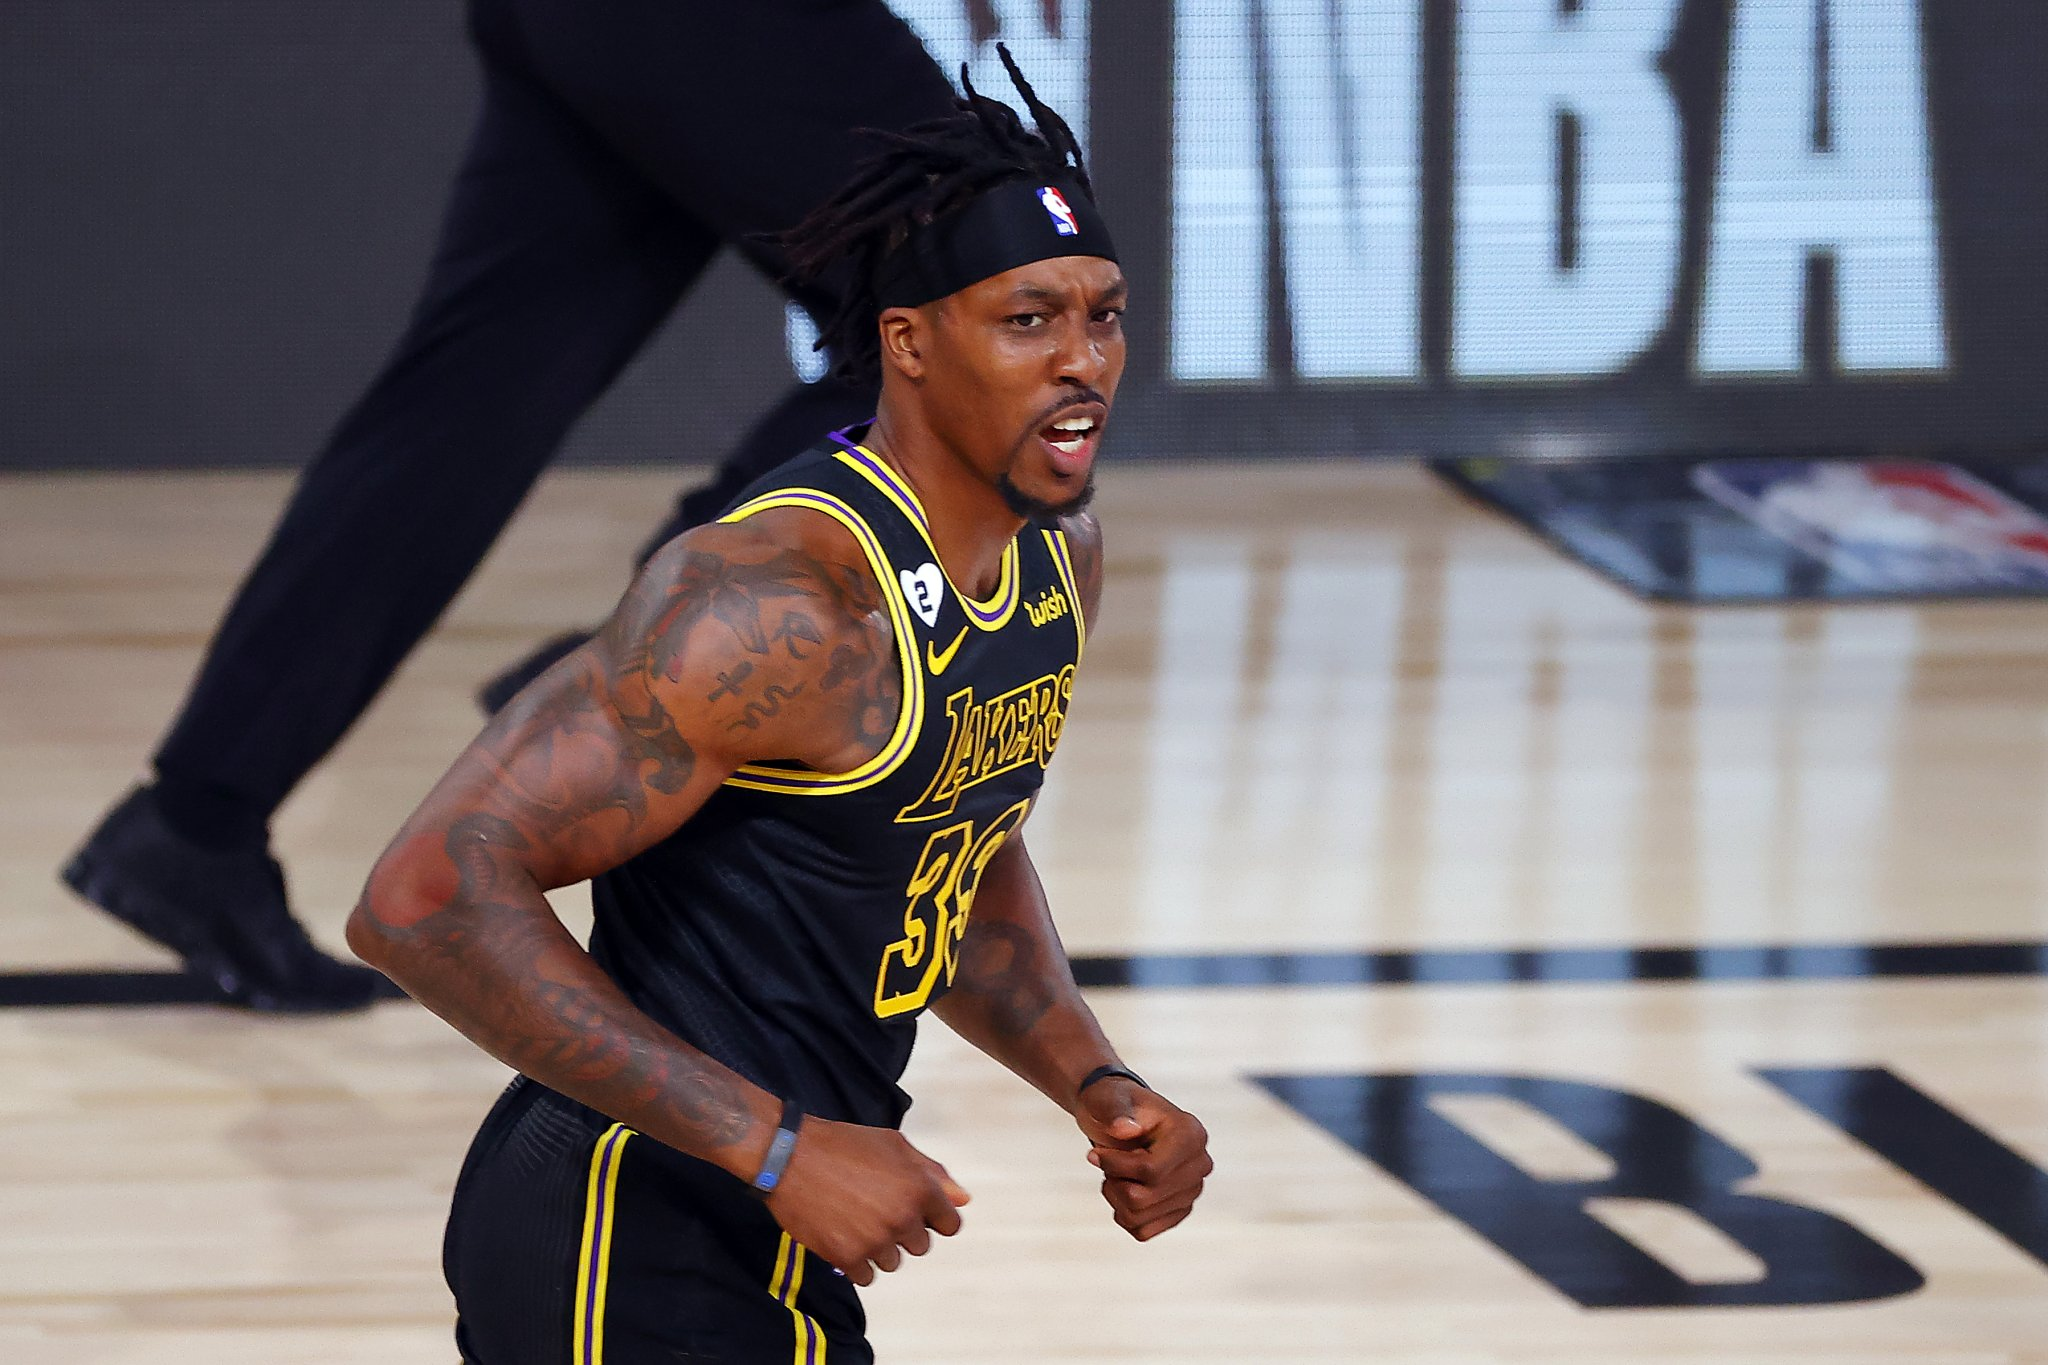 Dwight Howard's Ex Royce Reed Puts Him On Blast For Allegedly Neglecting His Kids For Months During Lakers' Title Run - BroBible